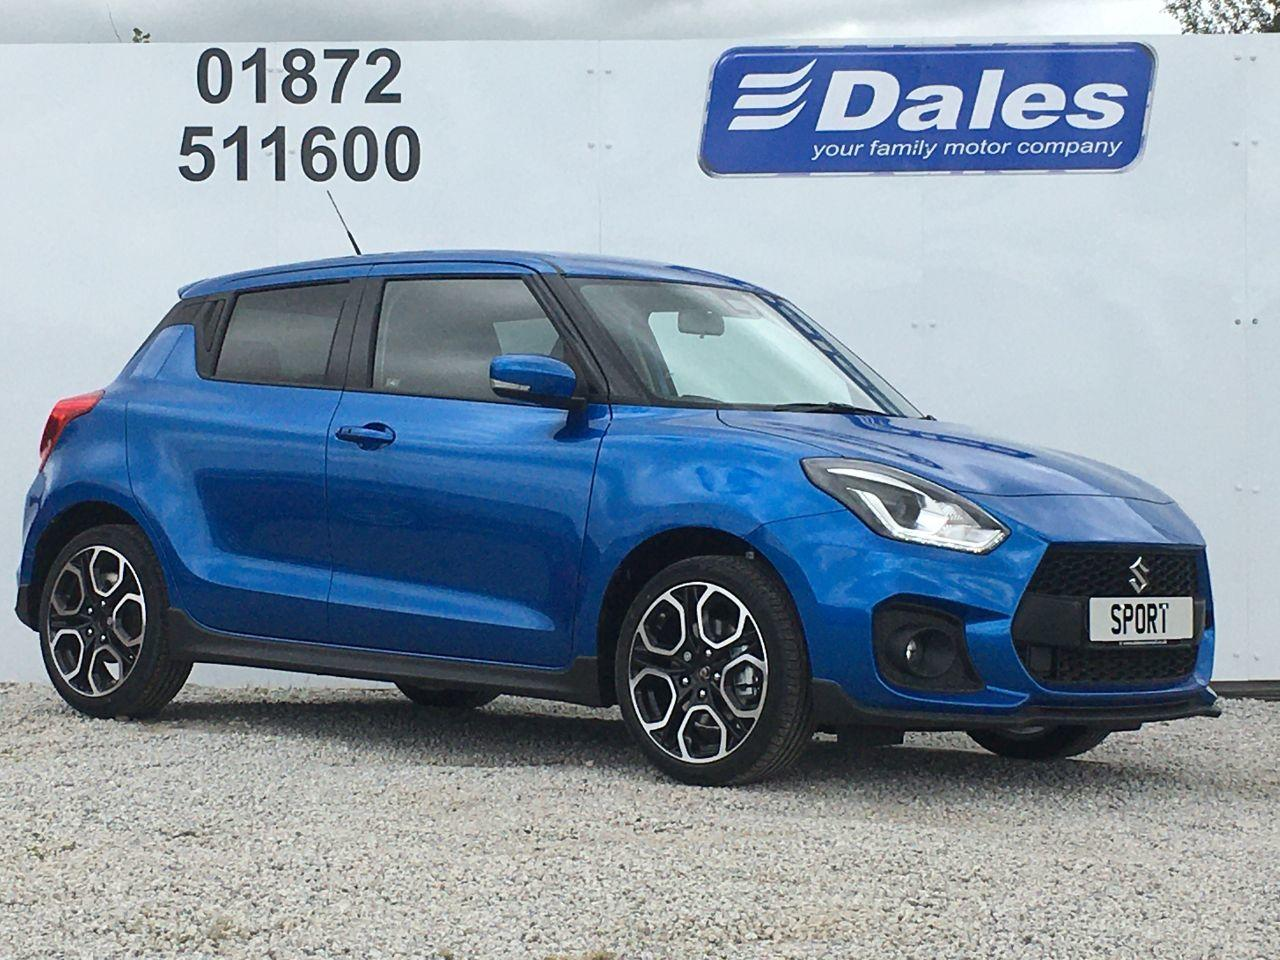 Suzuki Swift 1.4 BOOSTERJET SPORT HYBRID Hatchback Petrol / Electric Hybrid Speedy Blue